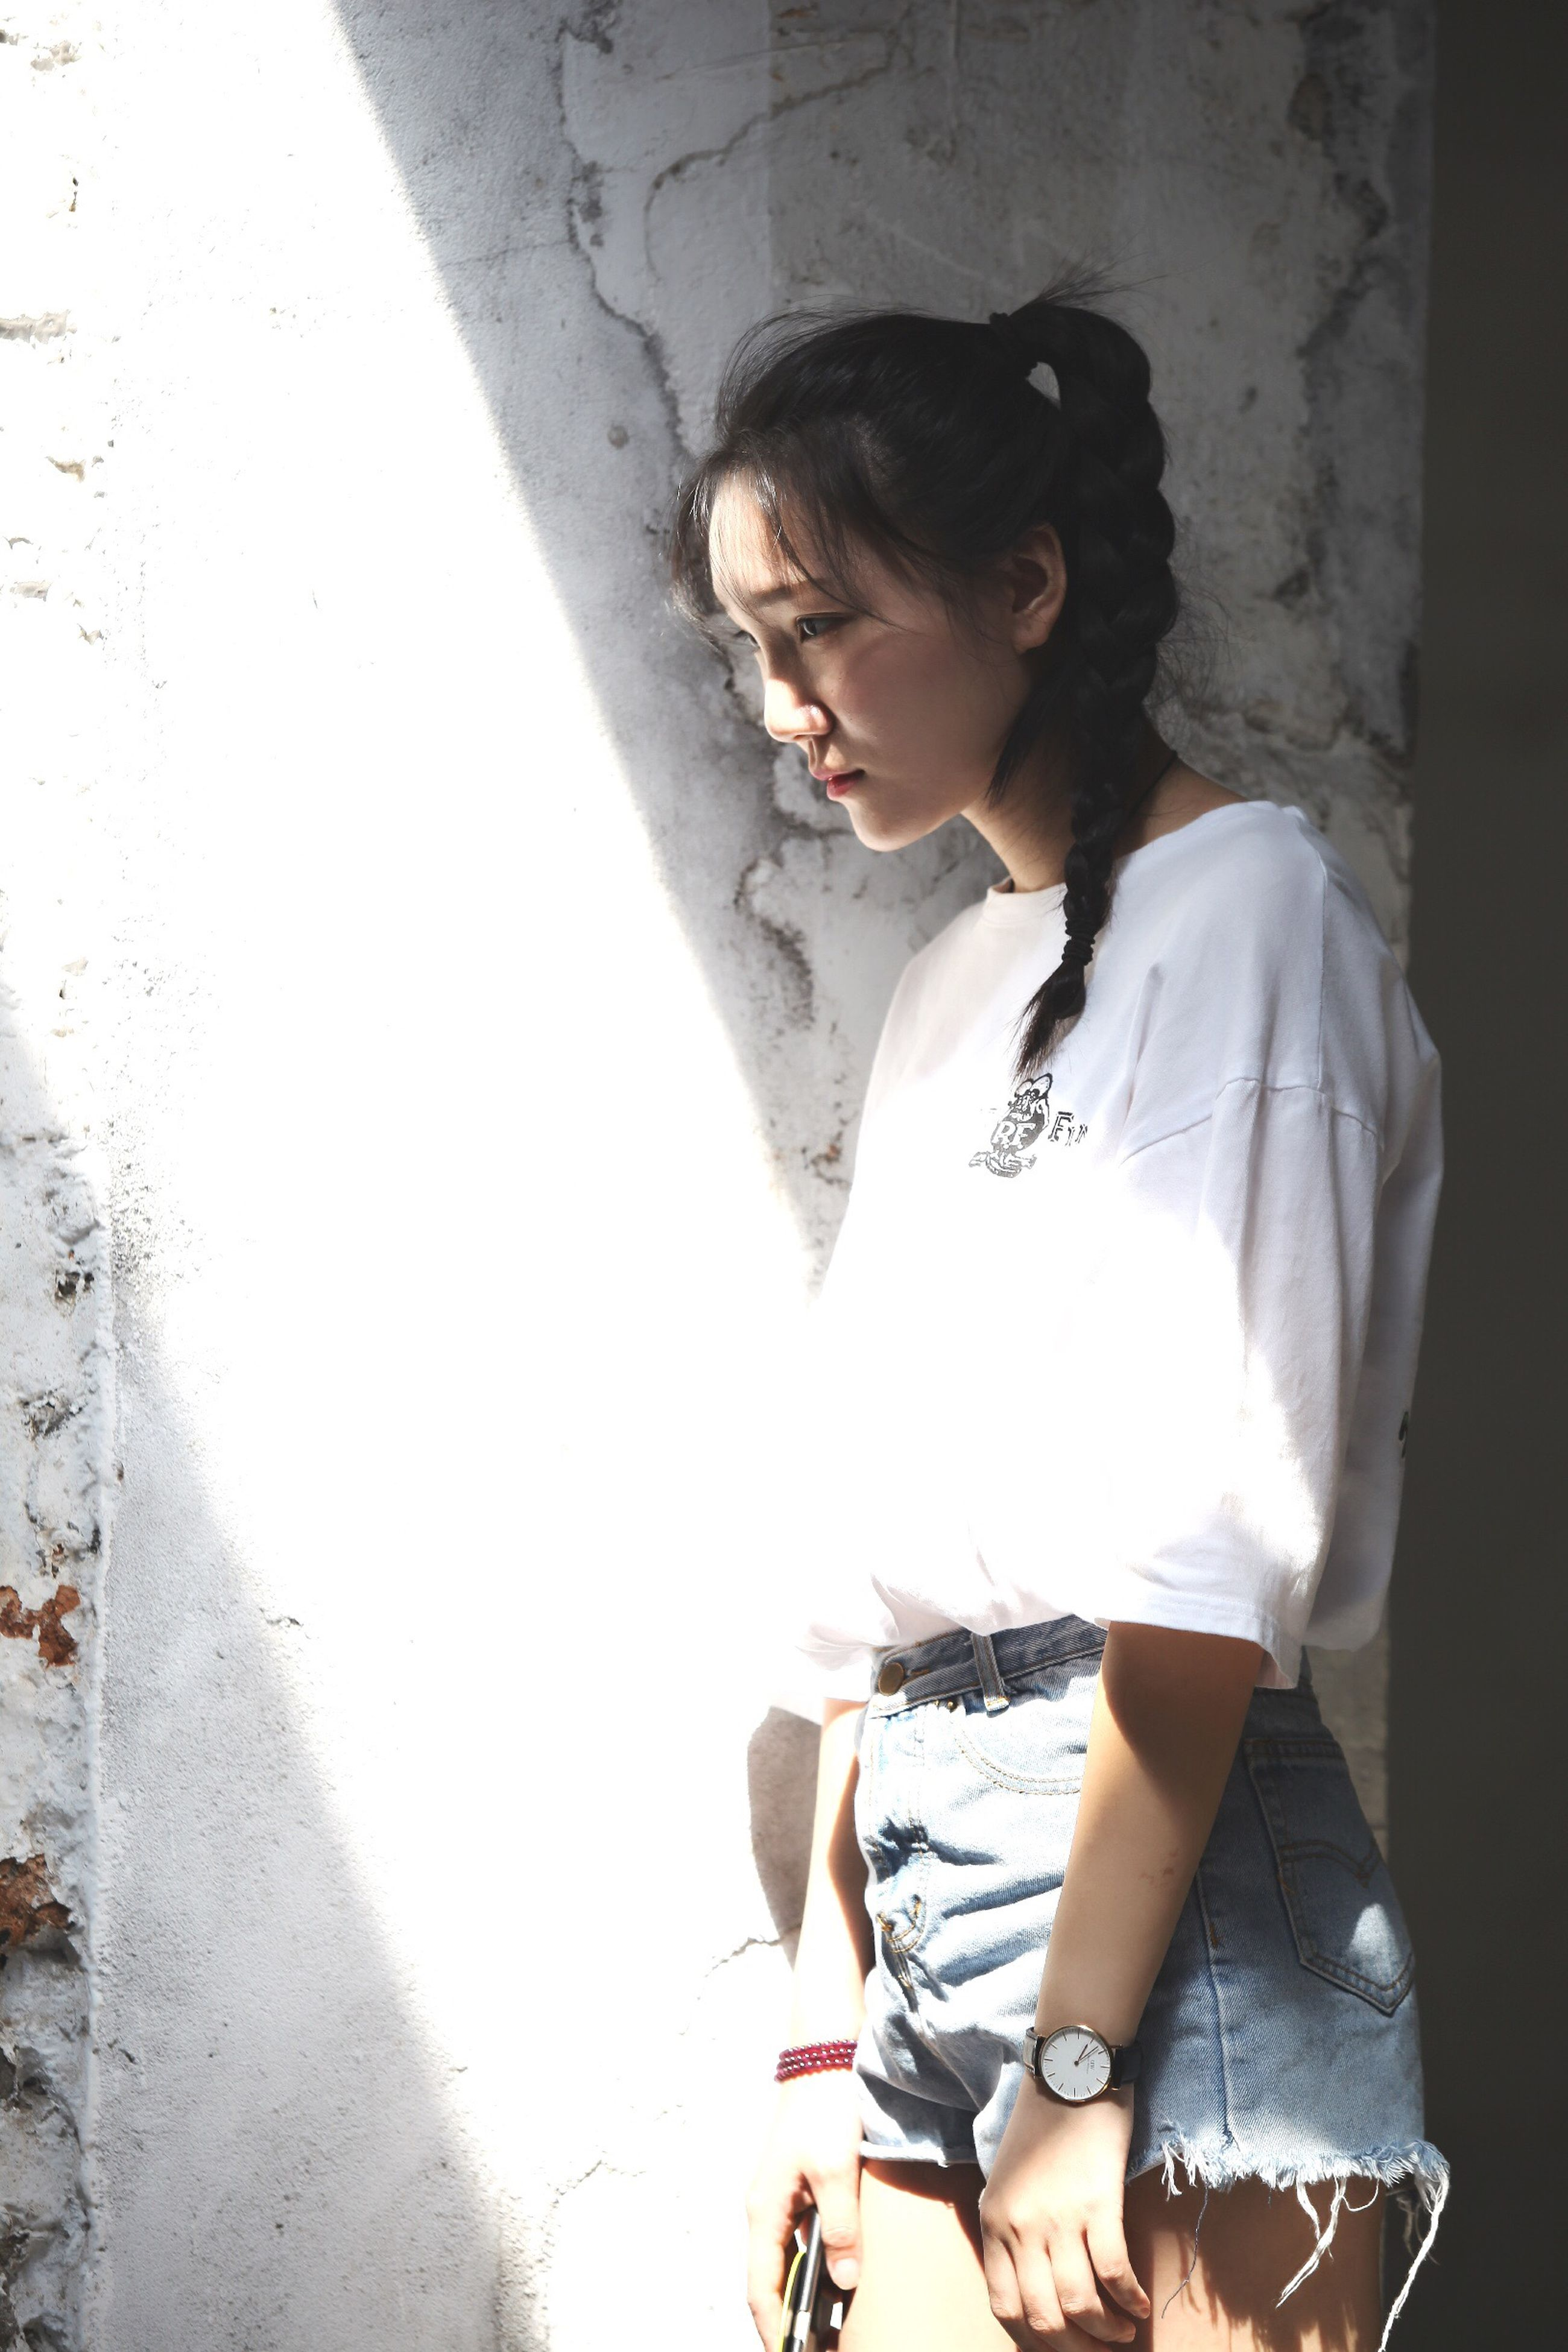 casual clothing, standing, sunglasses, young adult, person, youth culture, confidence, fashionable